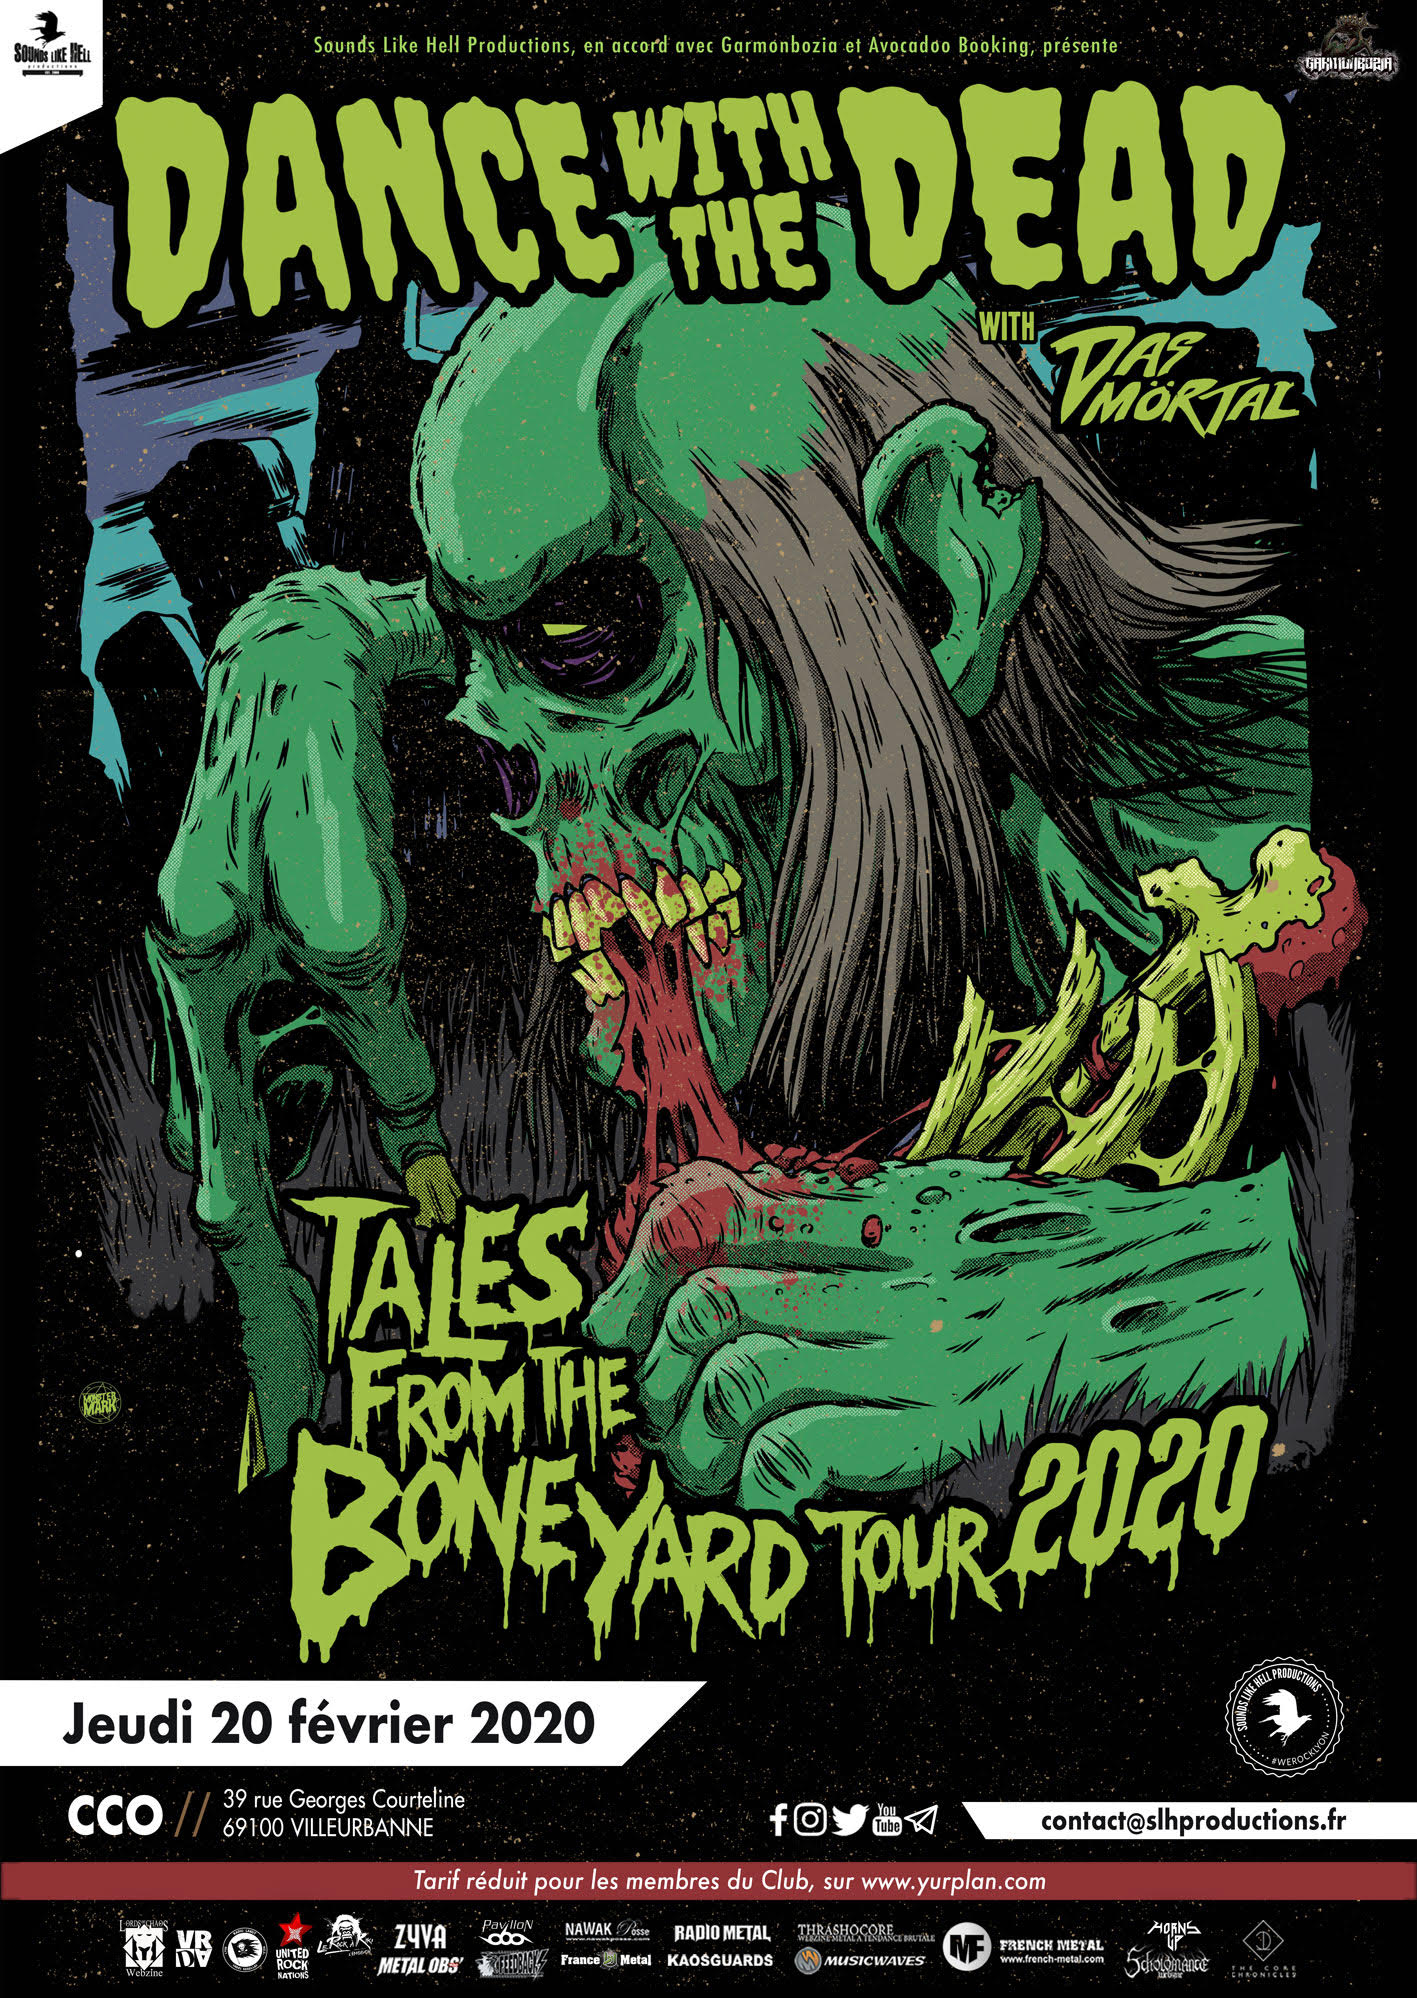 Affiche du concert de Dance with the Dead à Lyon en 2020